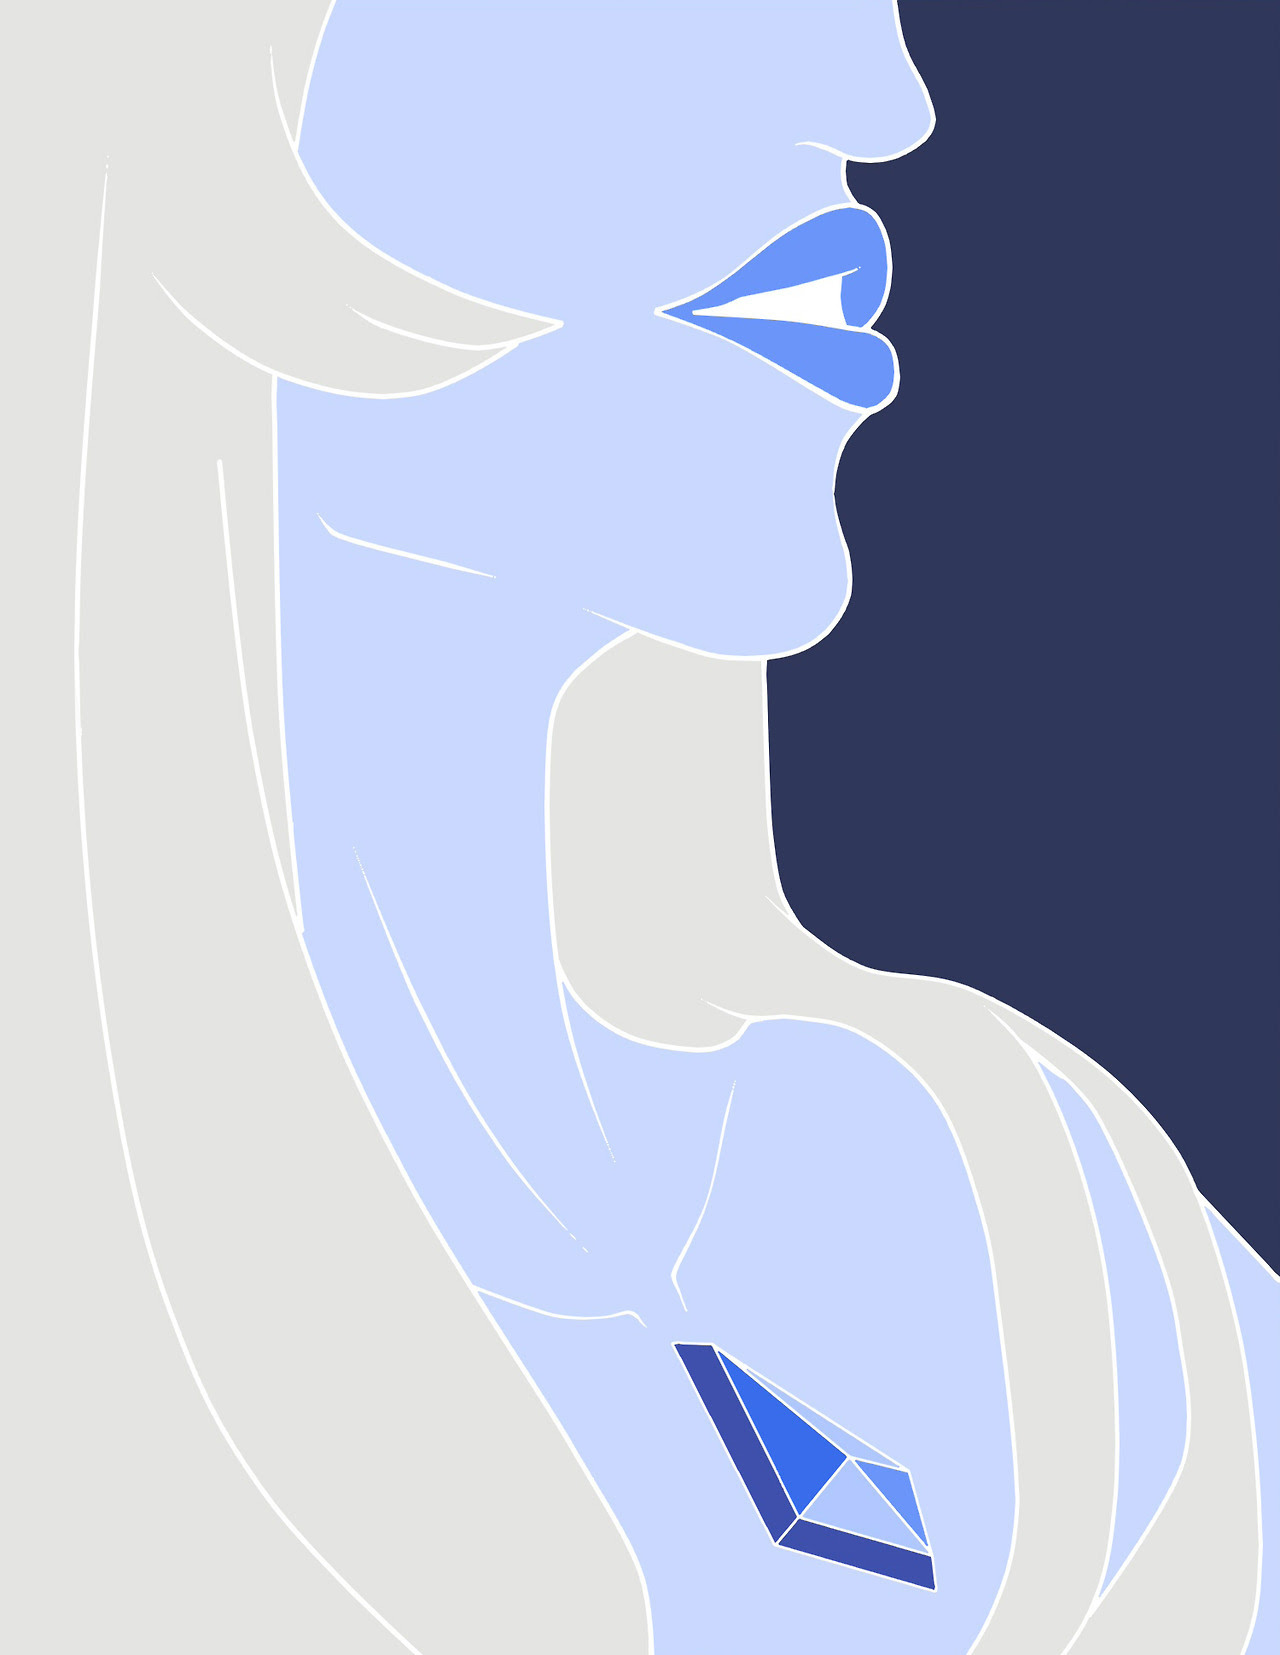 Another Blue Diamond! I like how this one turns out. I actually start this around June but only have the will to finish it recently 😂😂